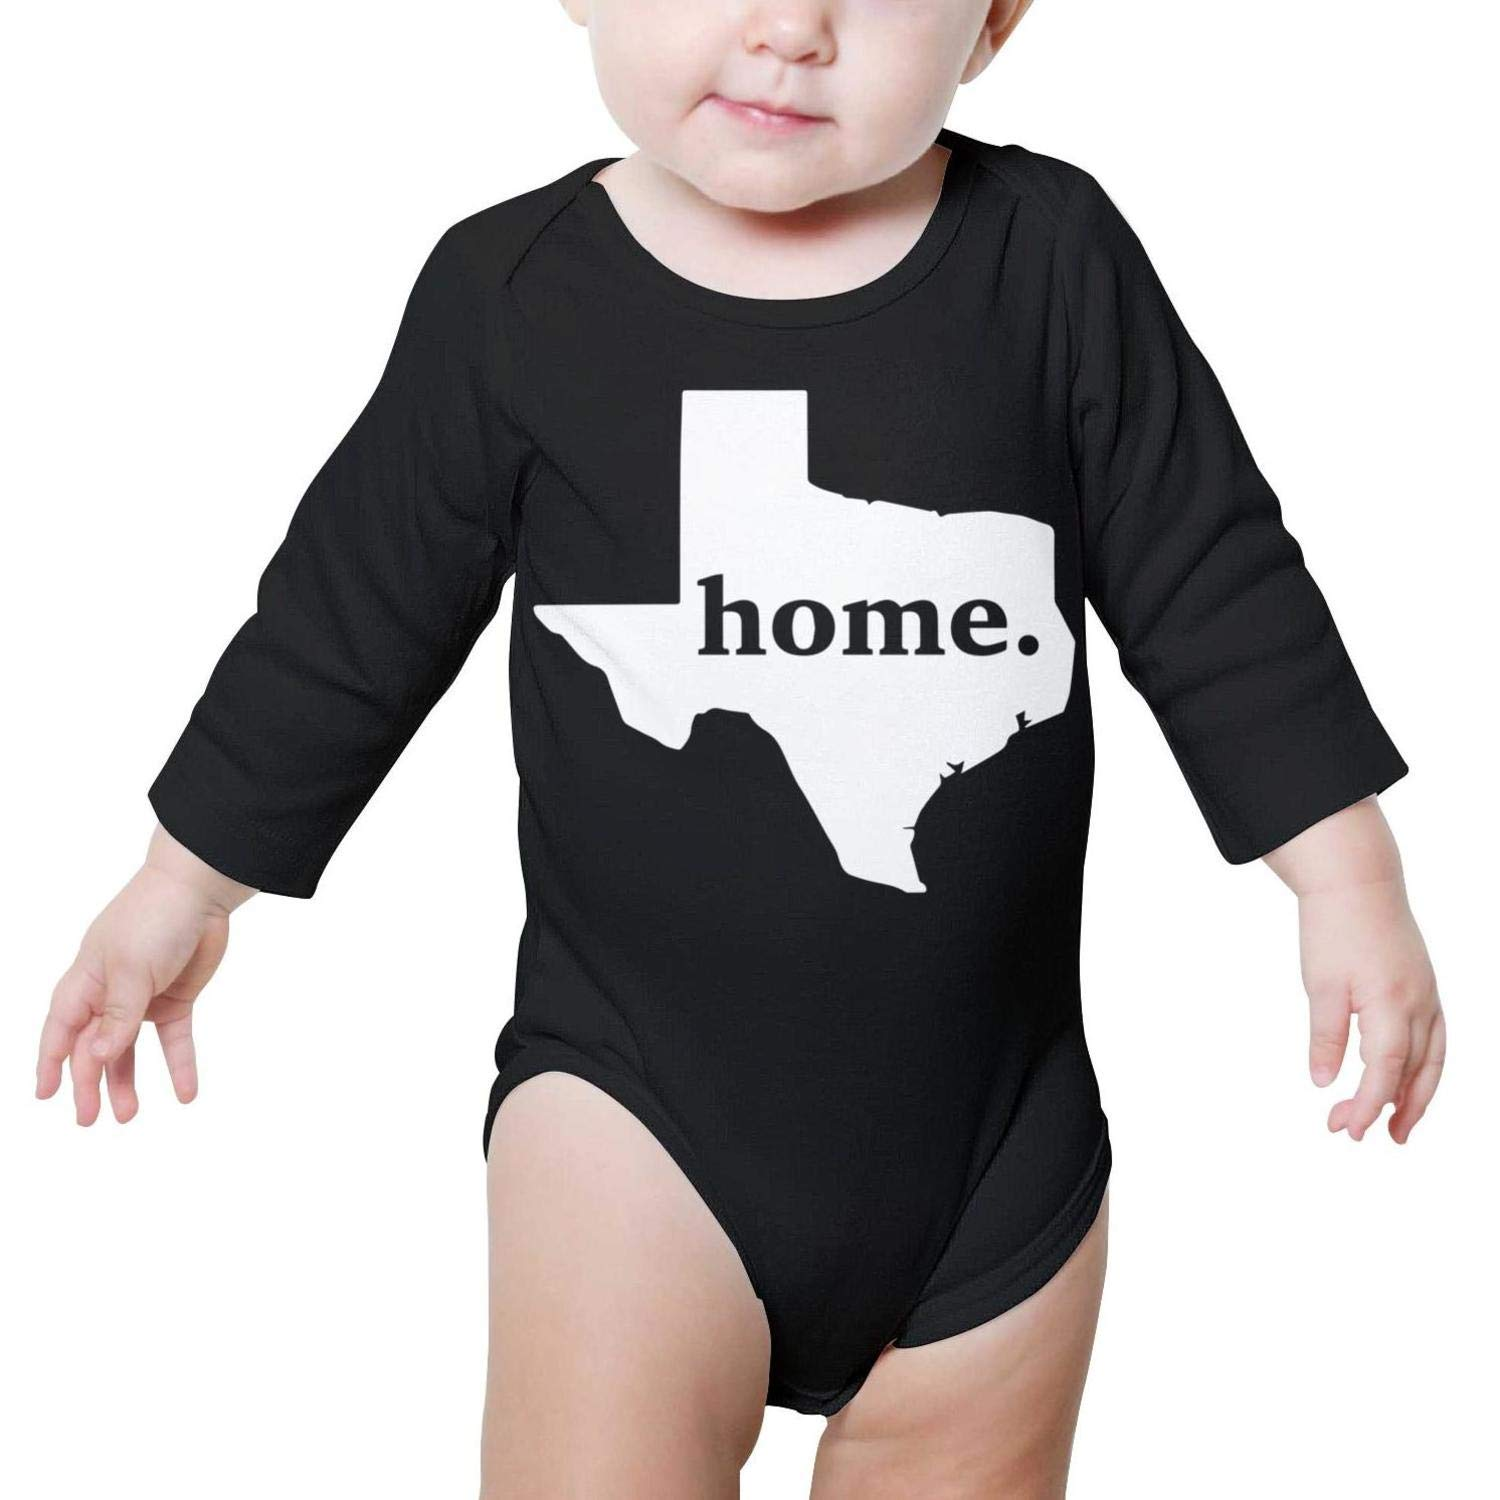 Home Texas Baby Onesie Clothing Long Sleeve Neutral Cotton Unique